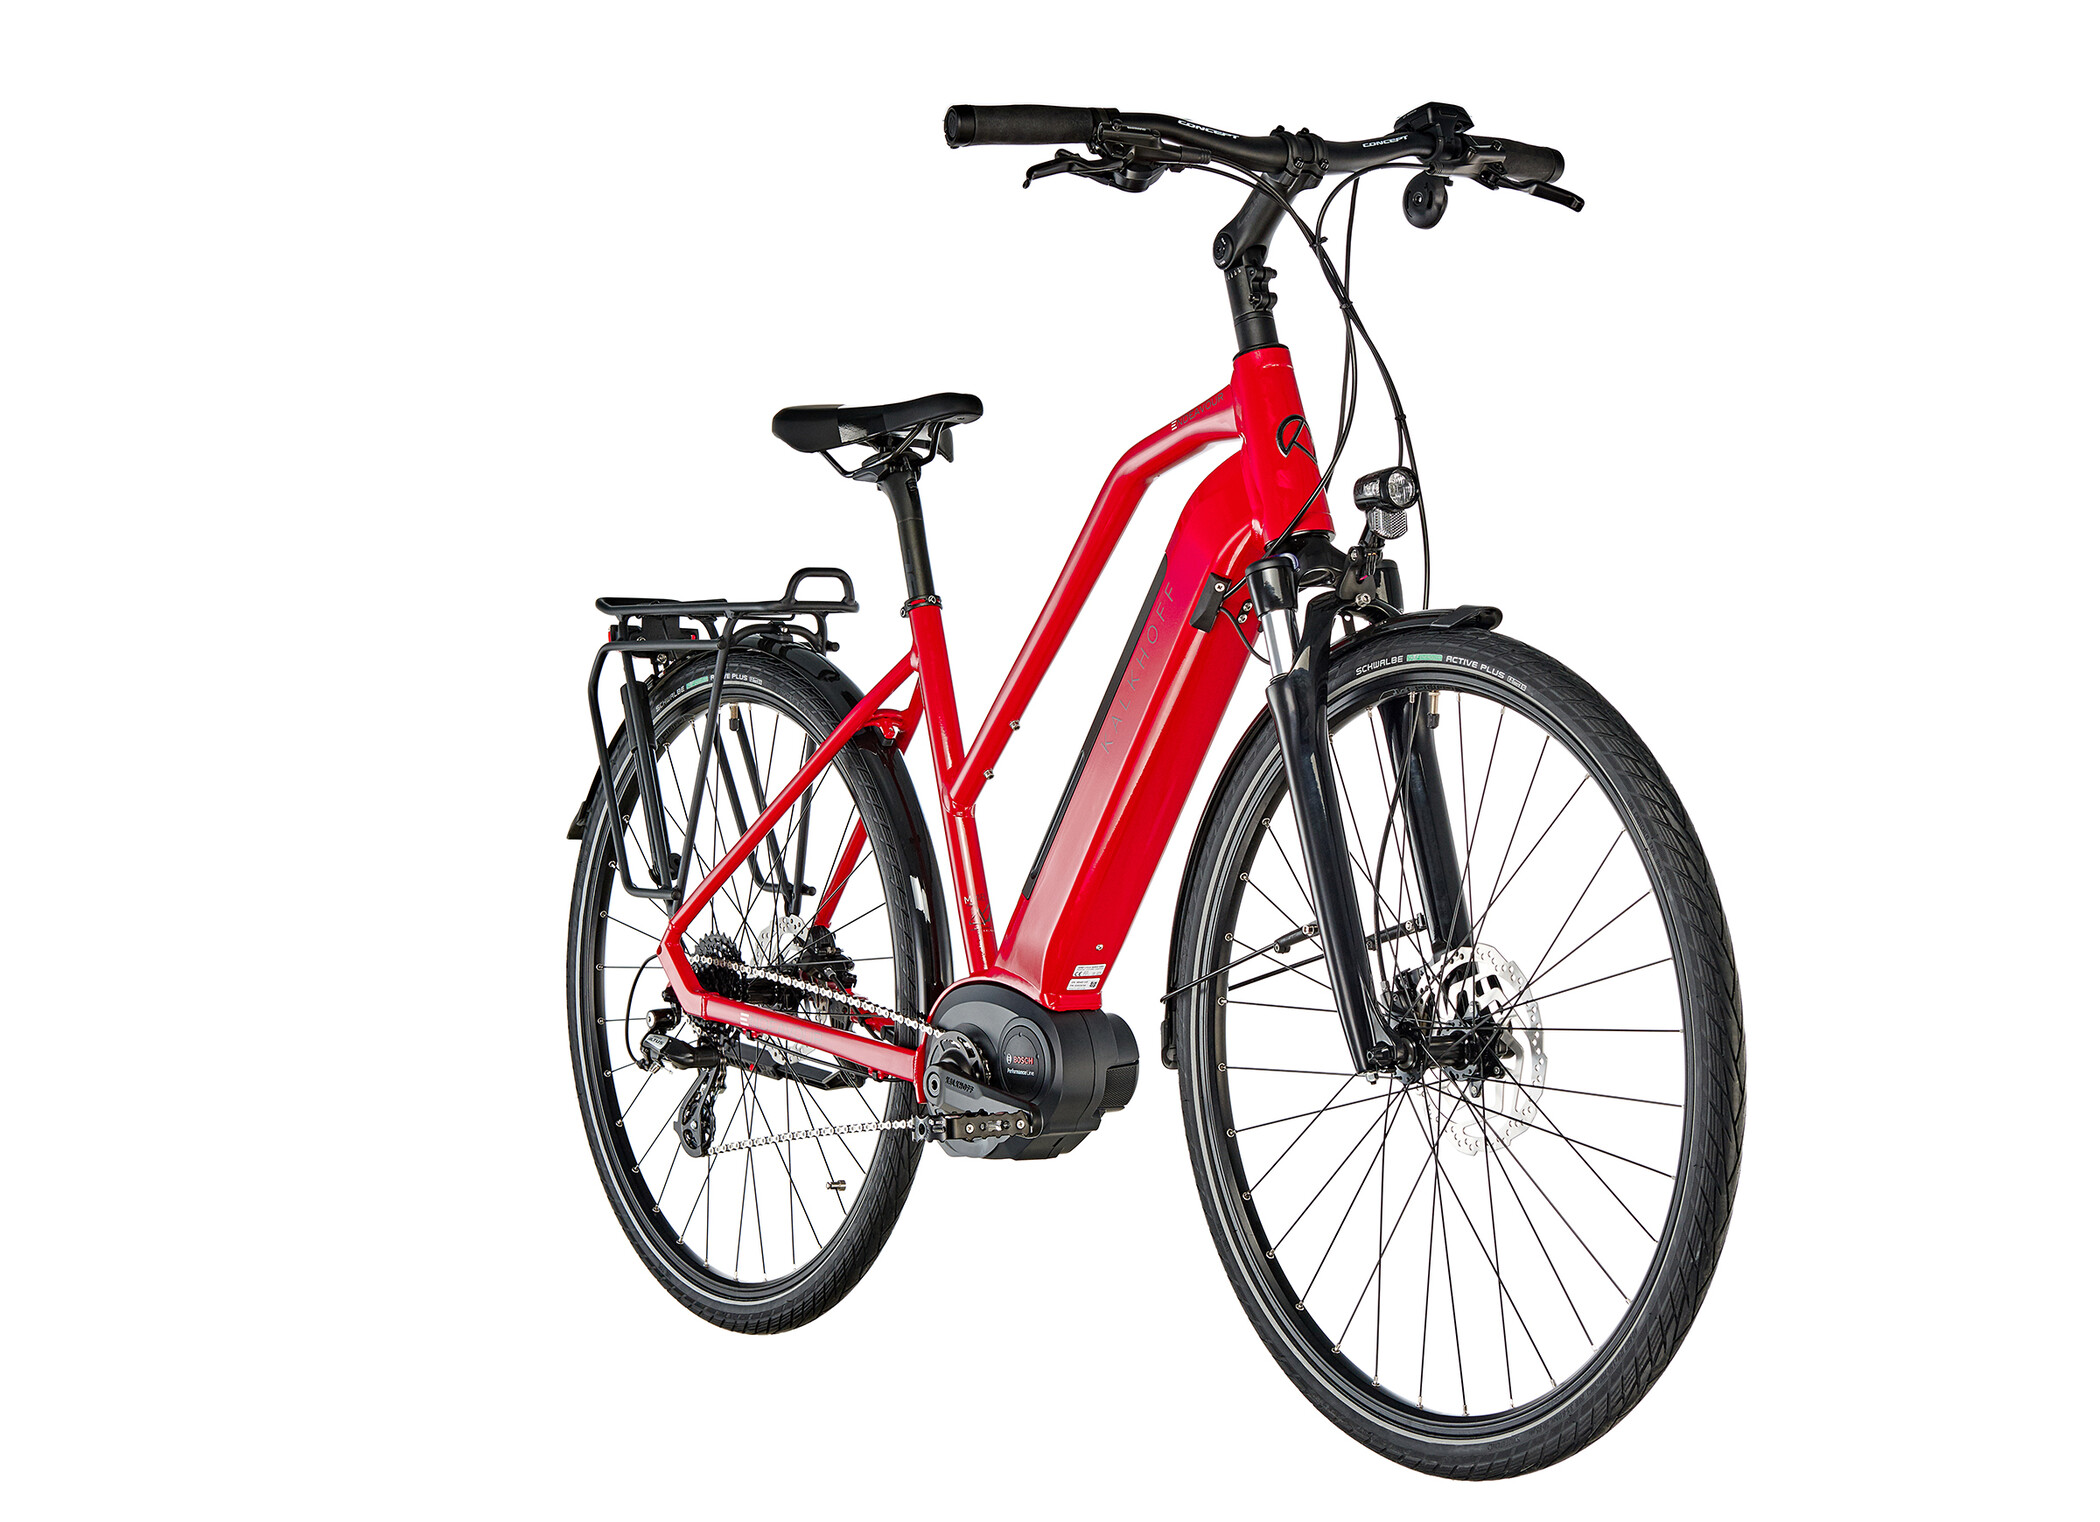 Kalkhoff Endeavour 3.B Move Trapez 500Wh, racingred glossy | City-cykler